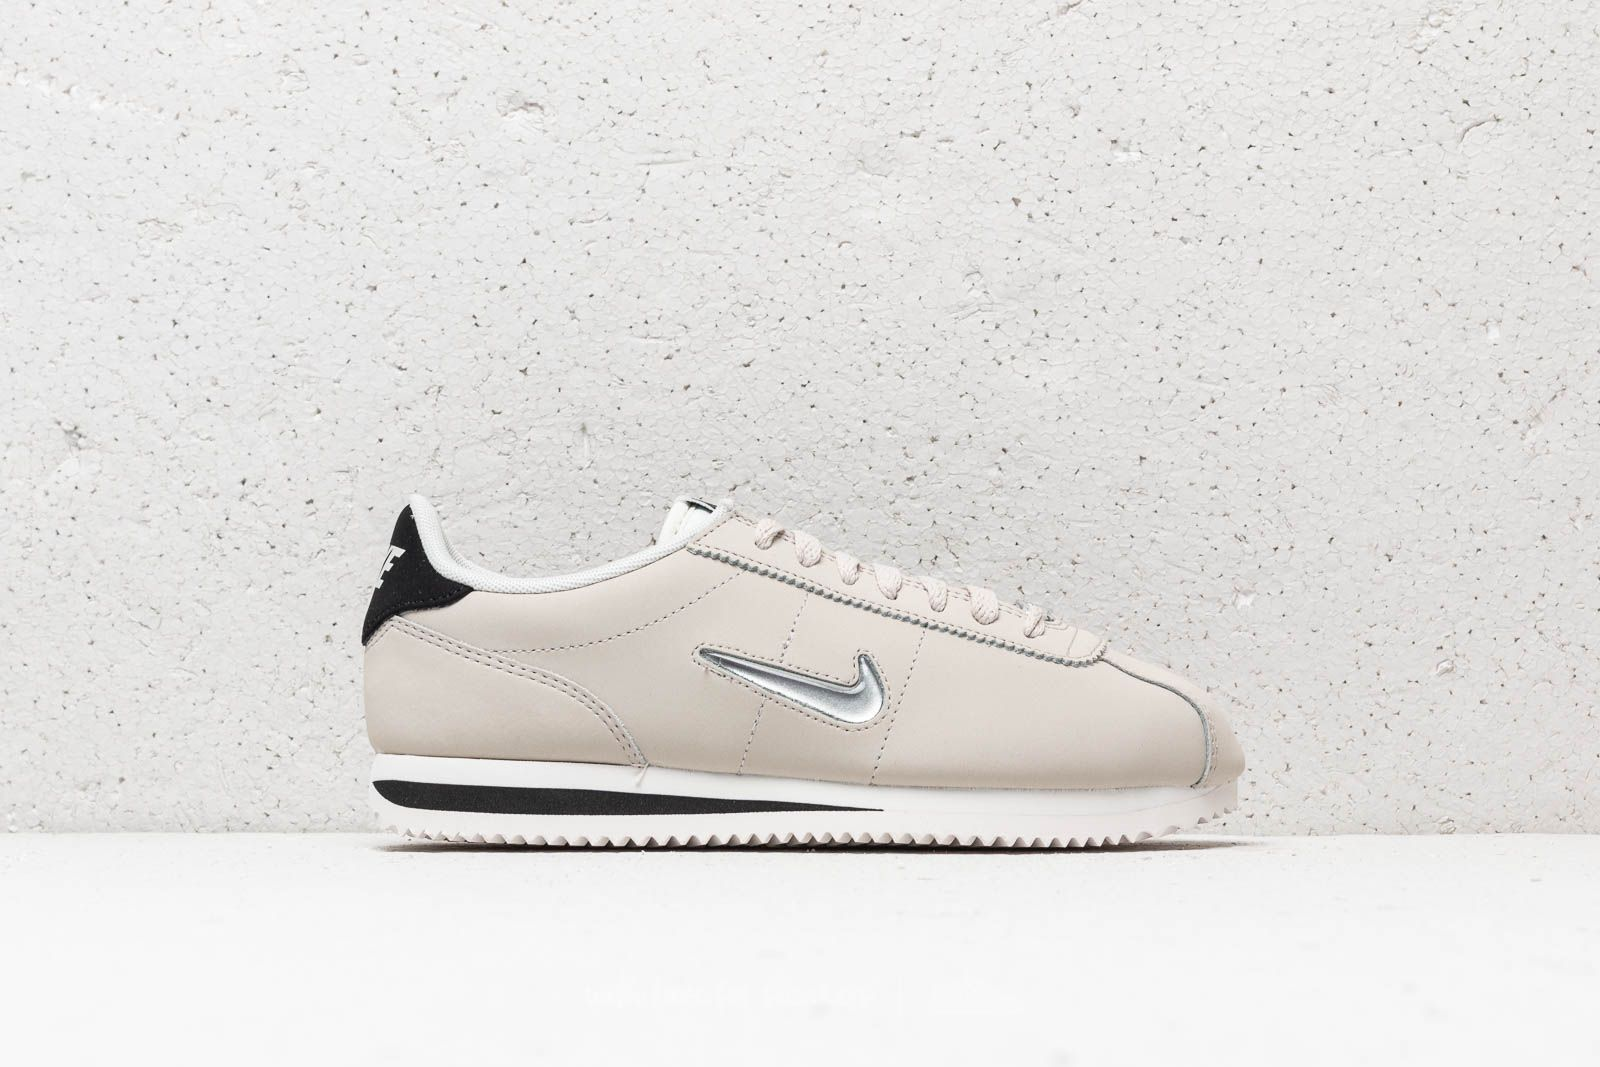 lowest price 46e7e 93f65 Nike Cortez Basic Jewel ´18 Wmns Light Bone  Metallic Silver at a great  price